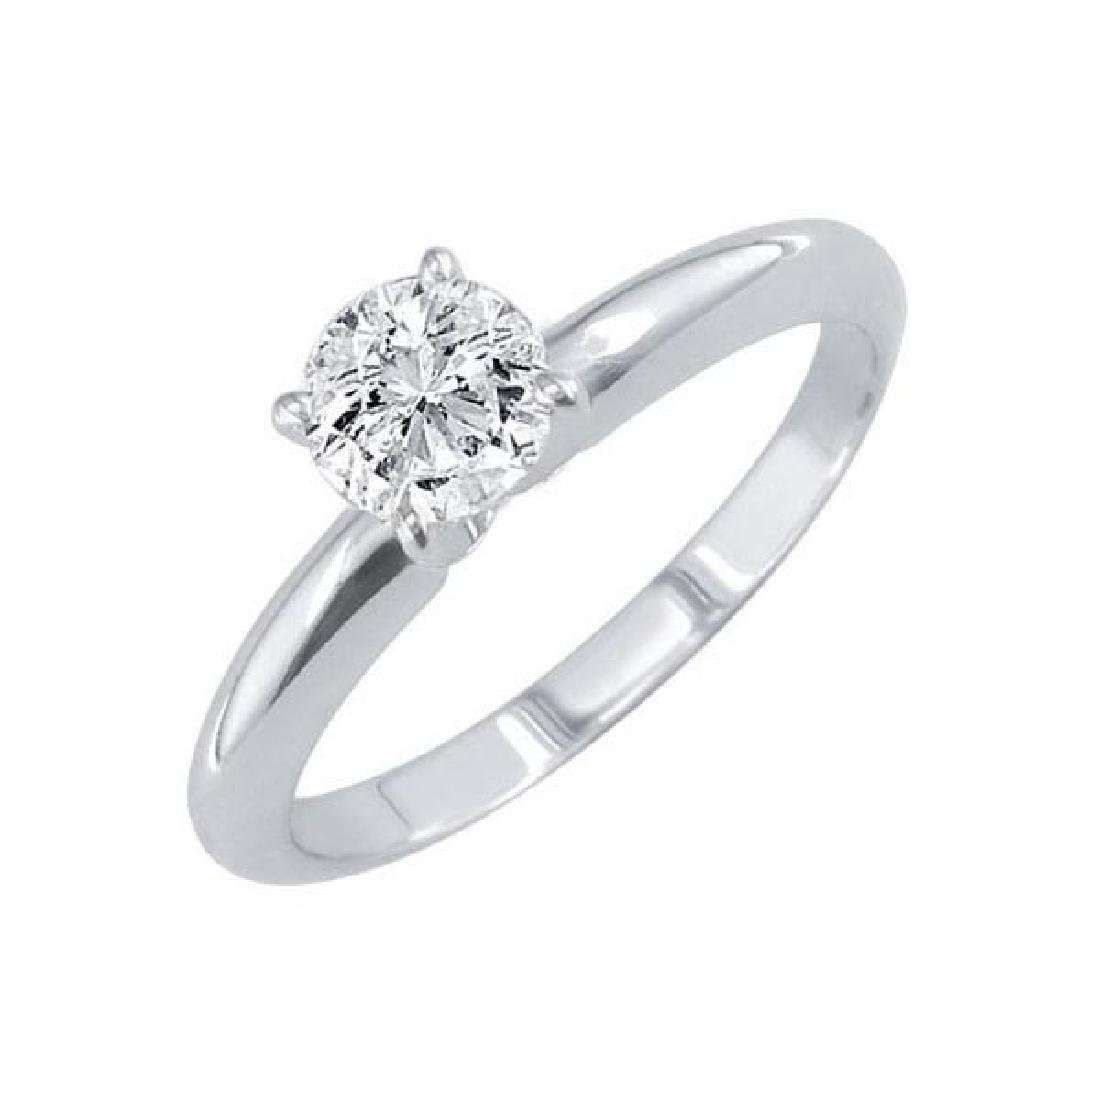 Certified 1.07 CTW Round Diamond Solitaire 14k Ring F/S